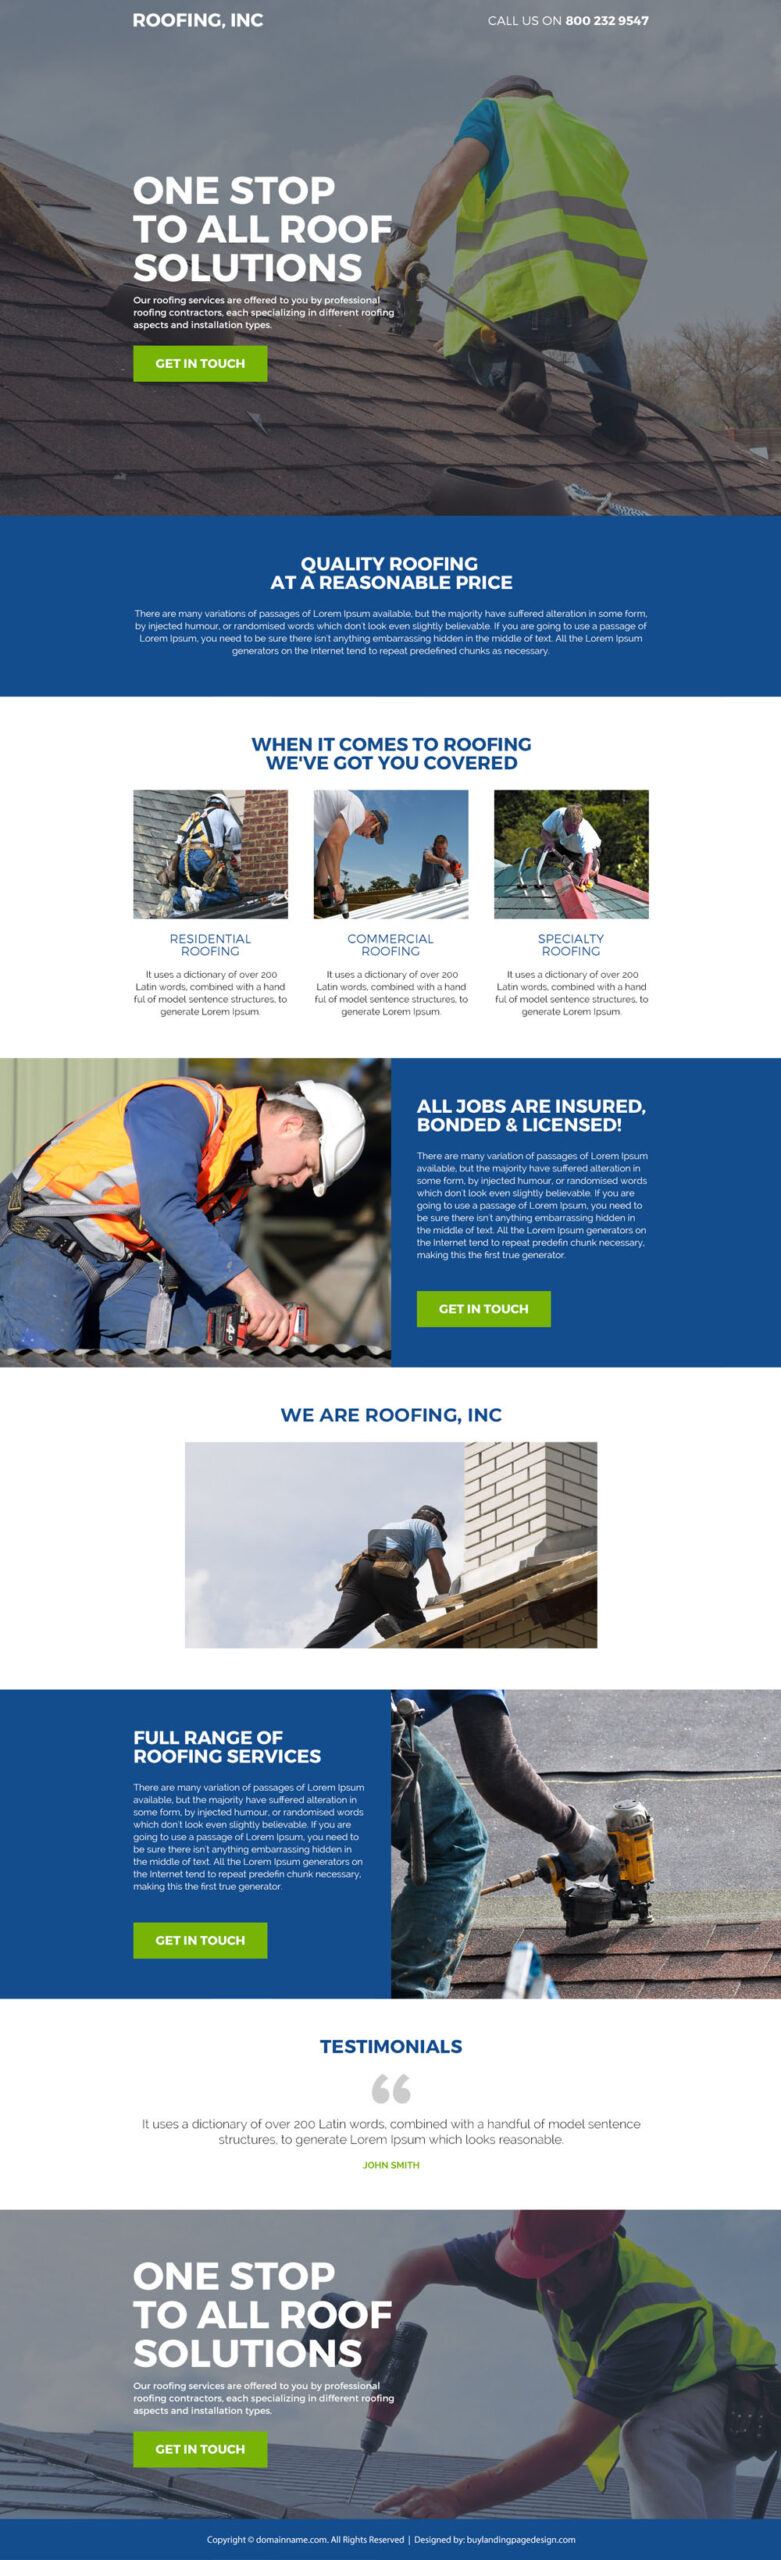 Quality roofing repair solutions modern landing page